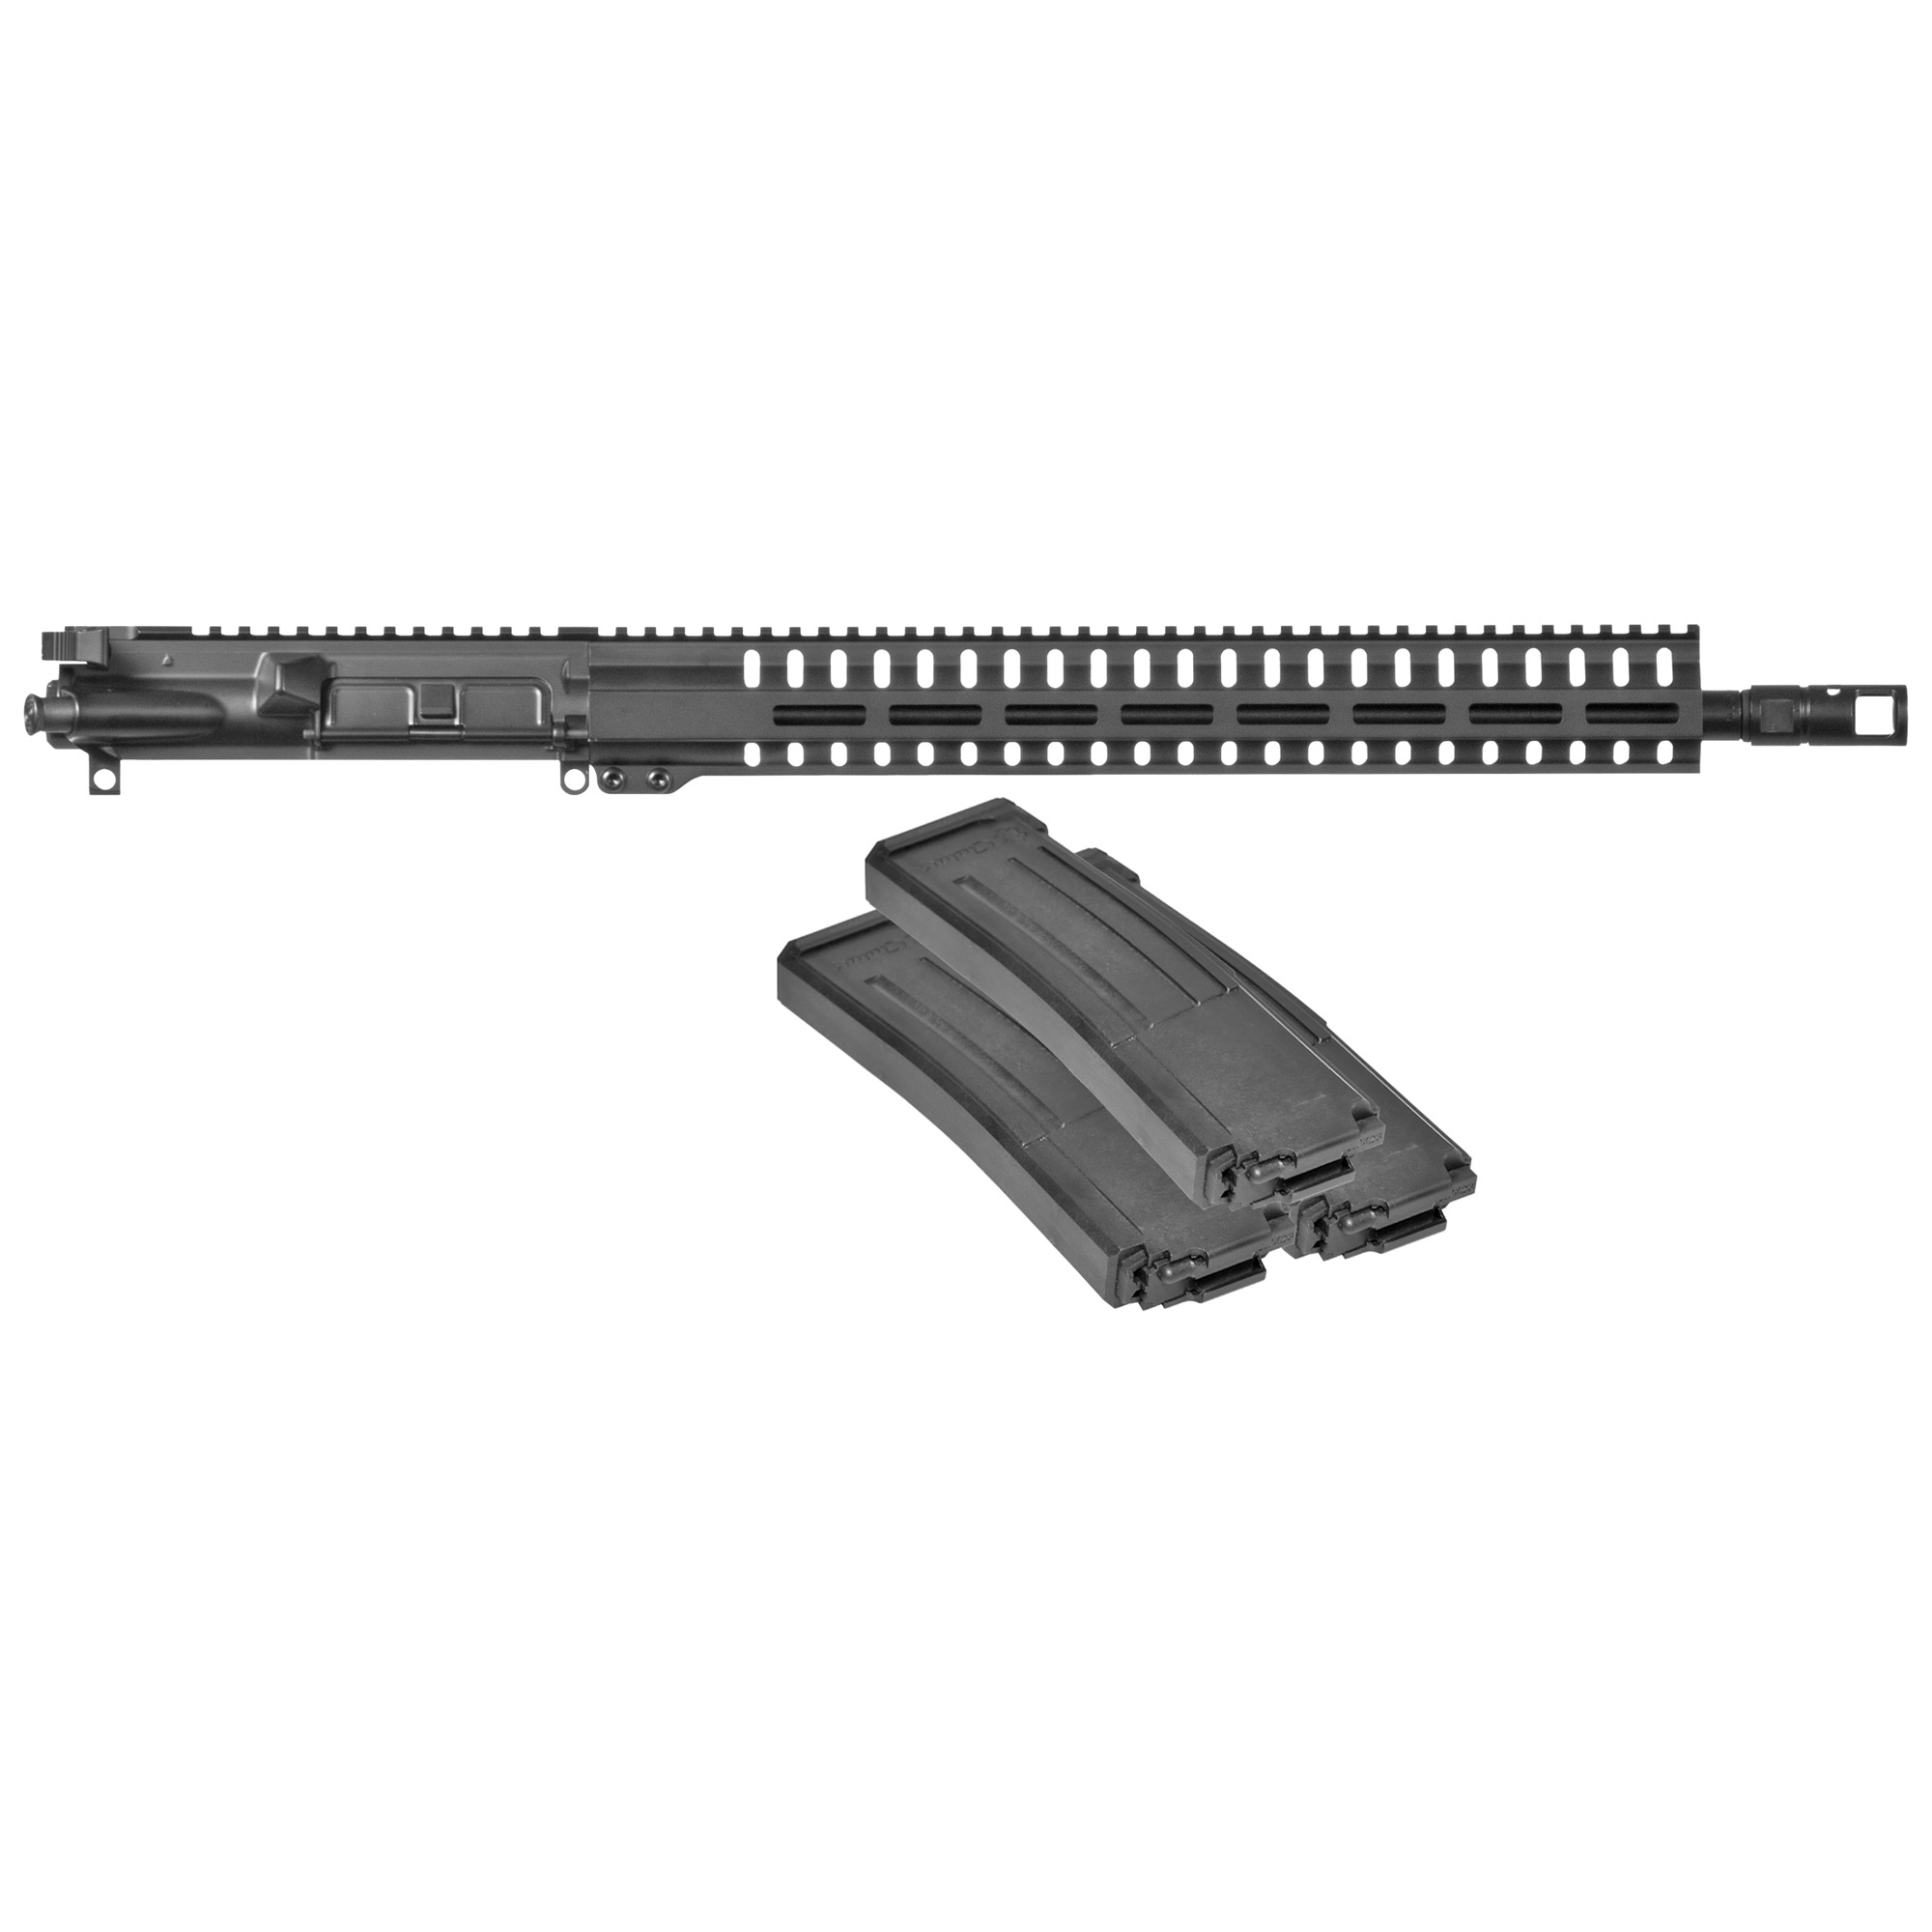 Cmmg Uppr Kit Resolute 300 5.7 3-40